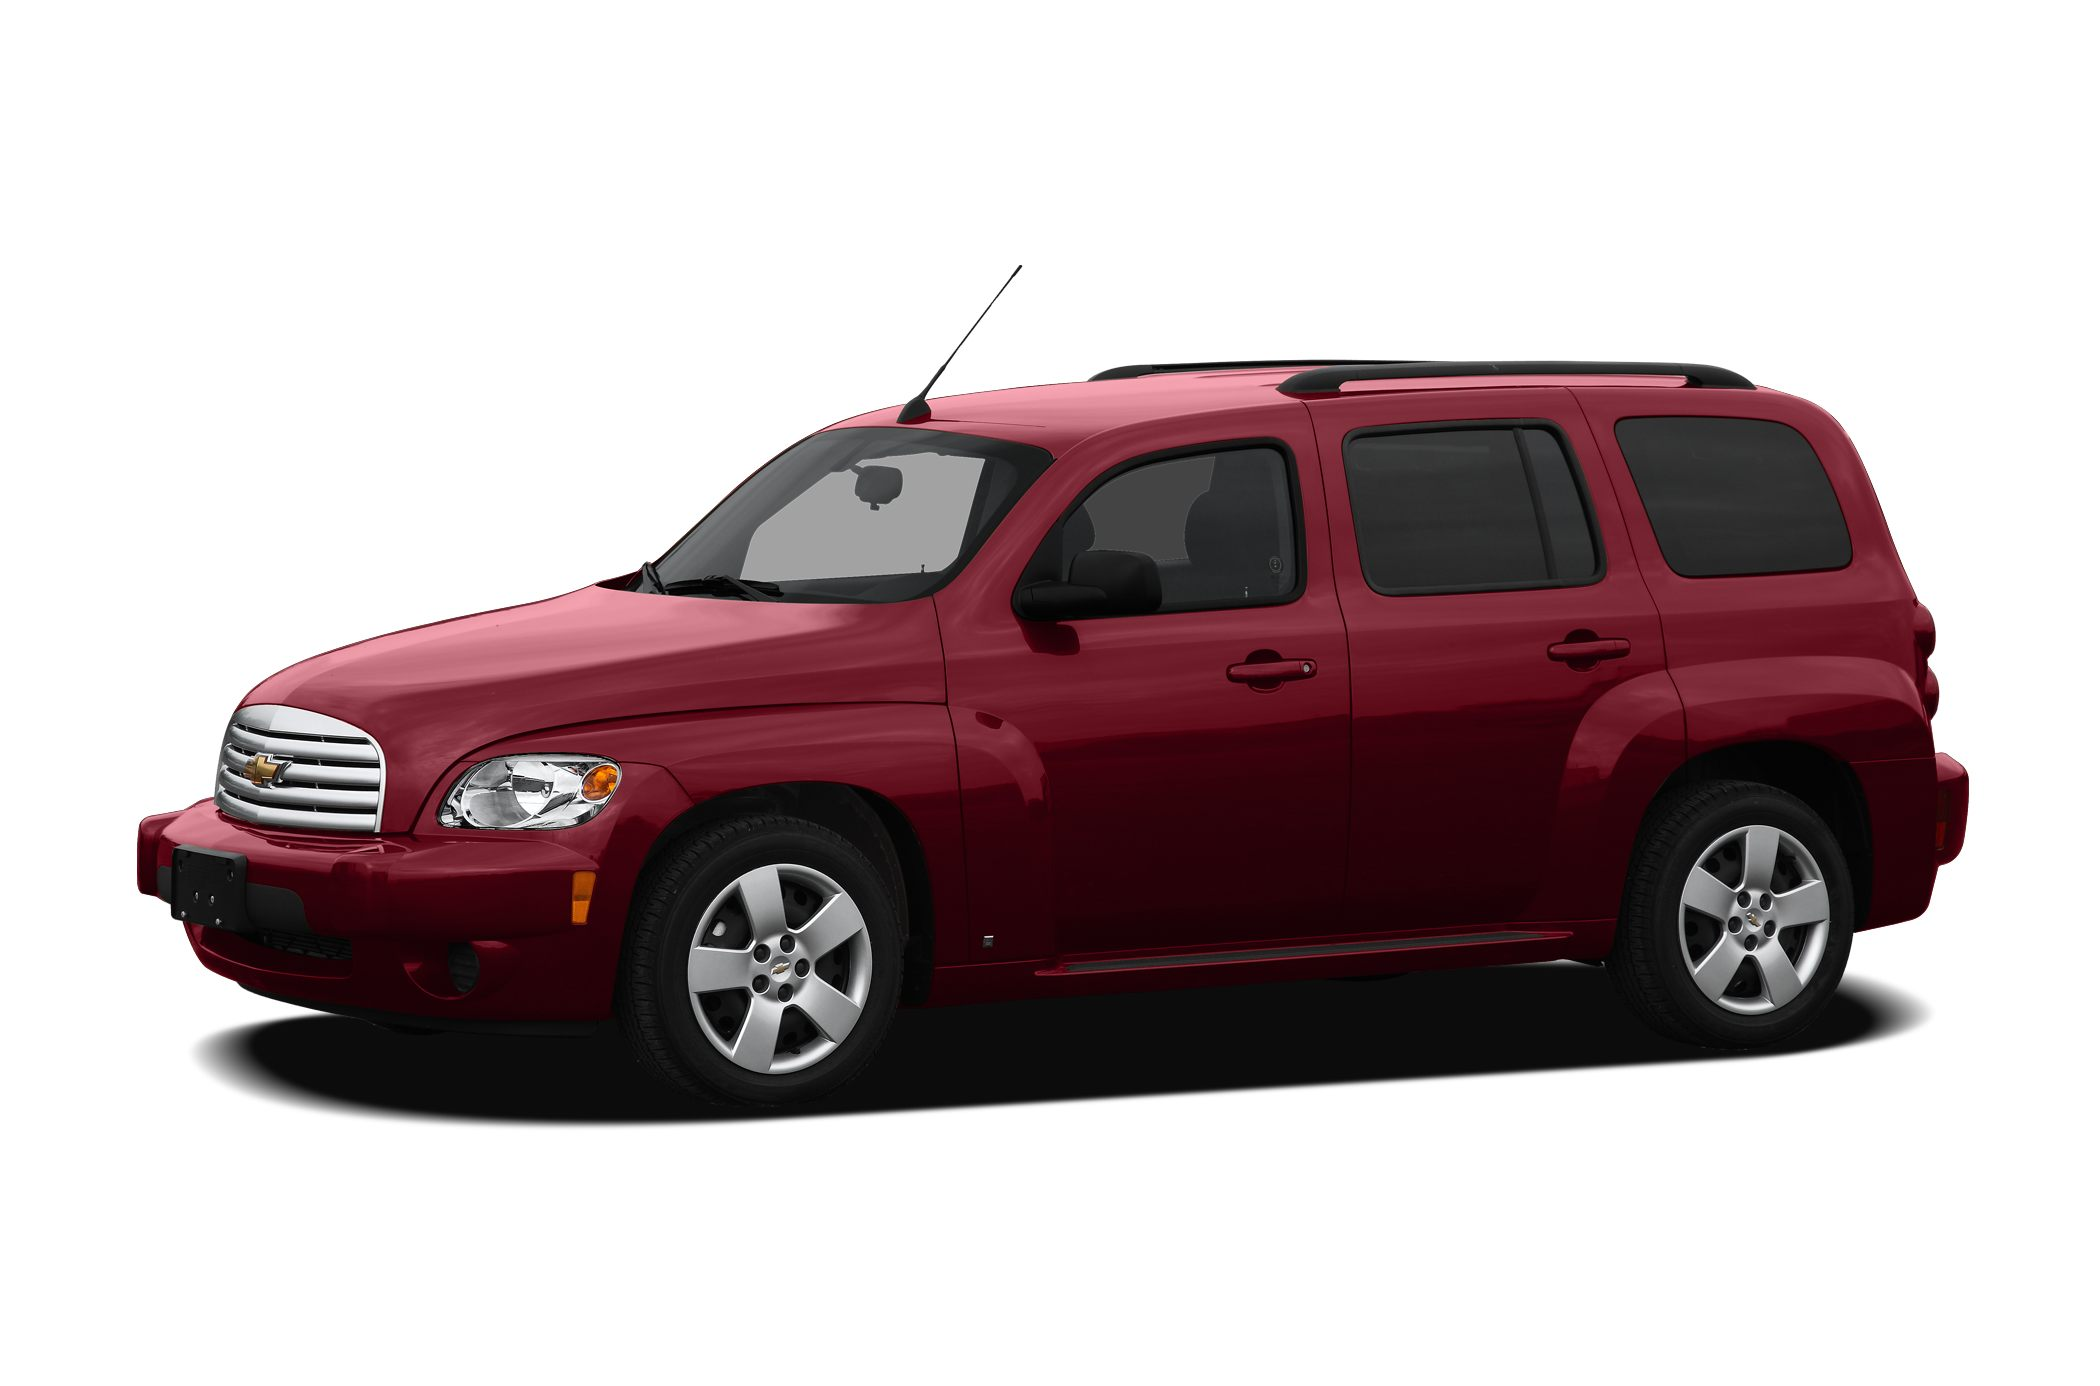 2008 Chevrolet HHR LT Wagon for sale in Erie for $0 with 125,150 miles